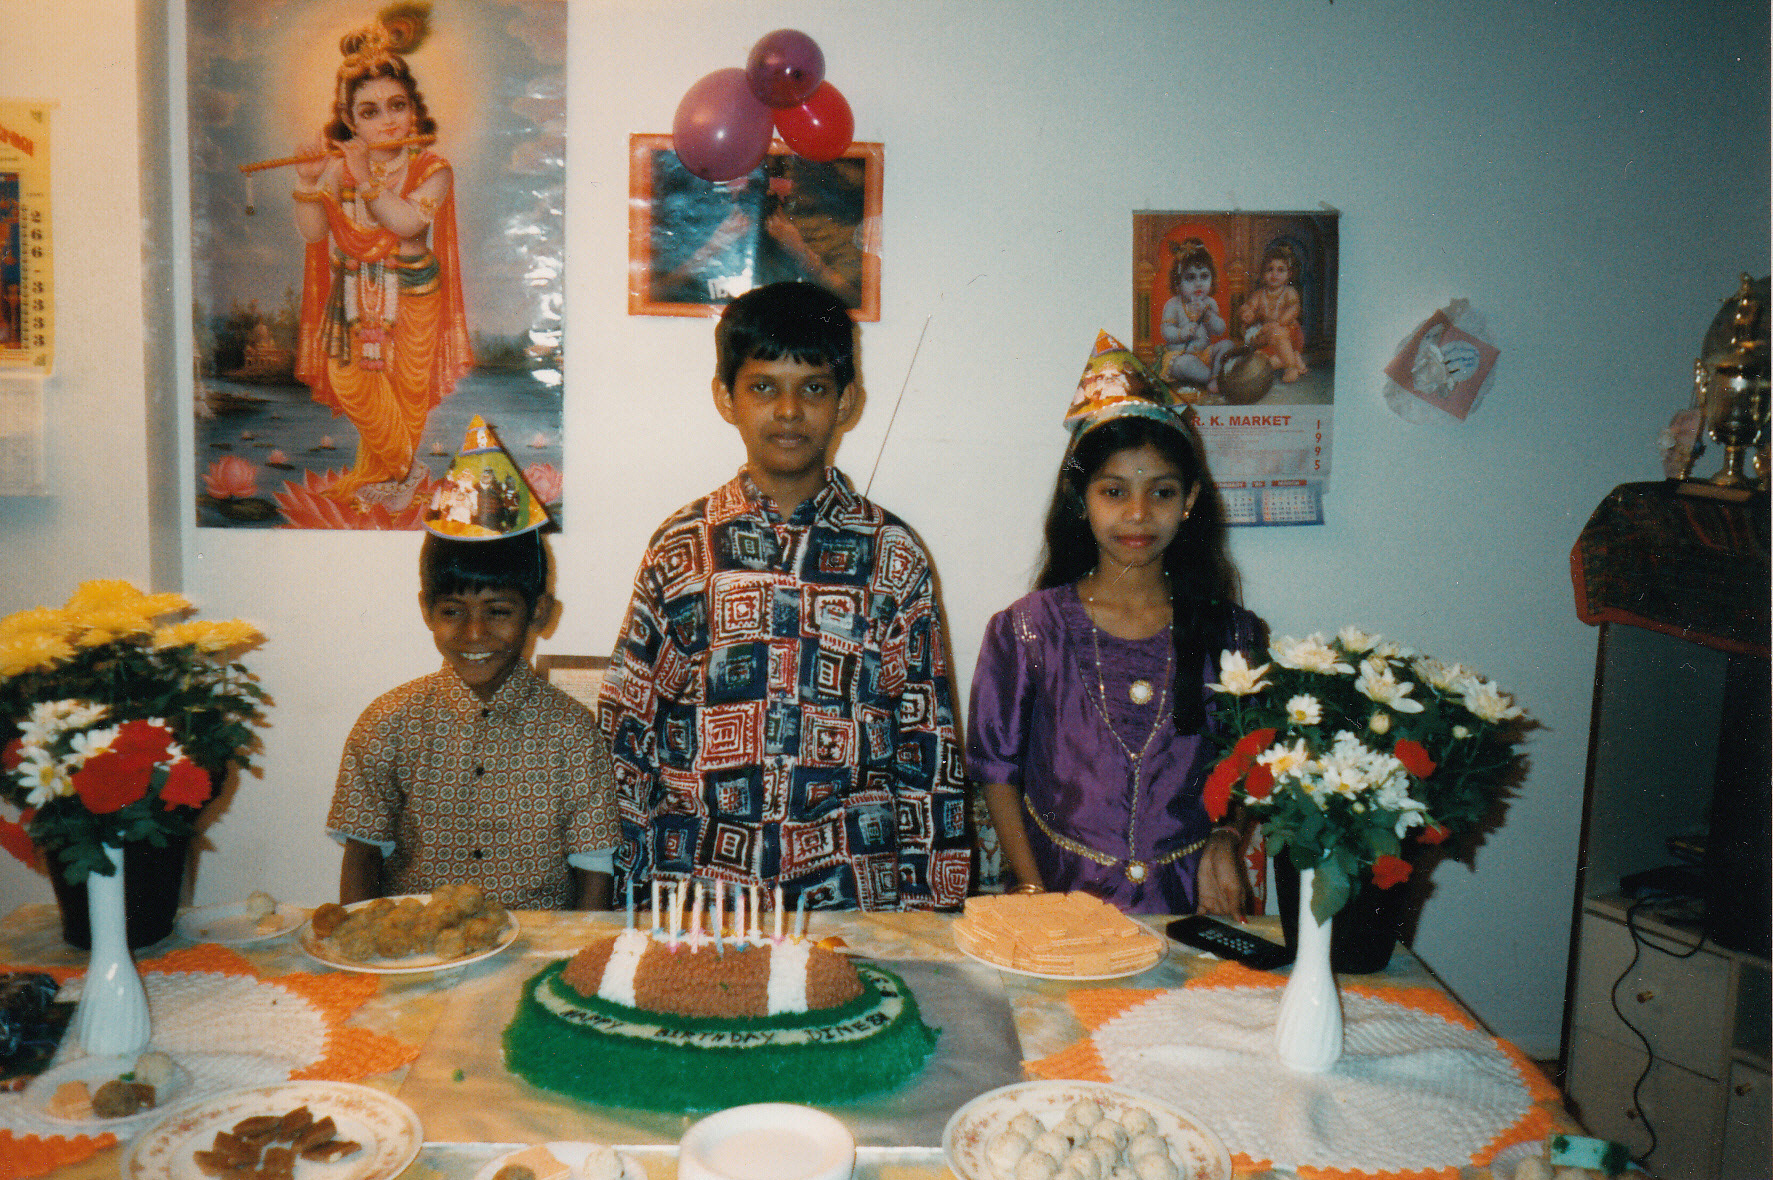 Sharmini is shown with her brothers, Kathees, right, and Dinesh, centre, during a birthday party.